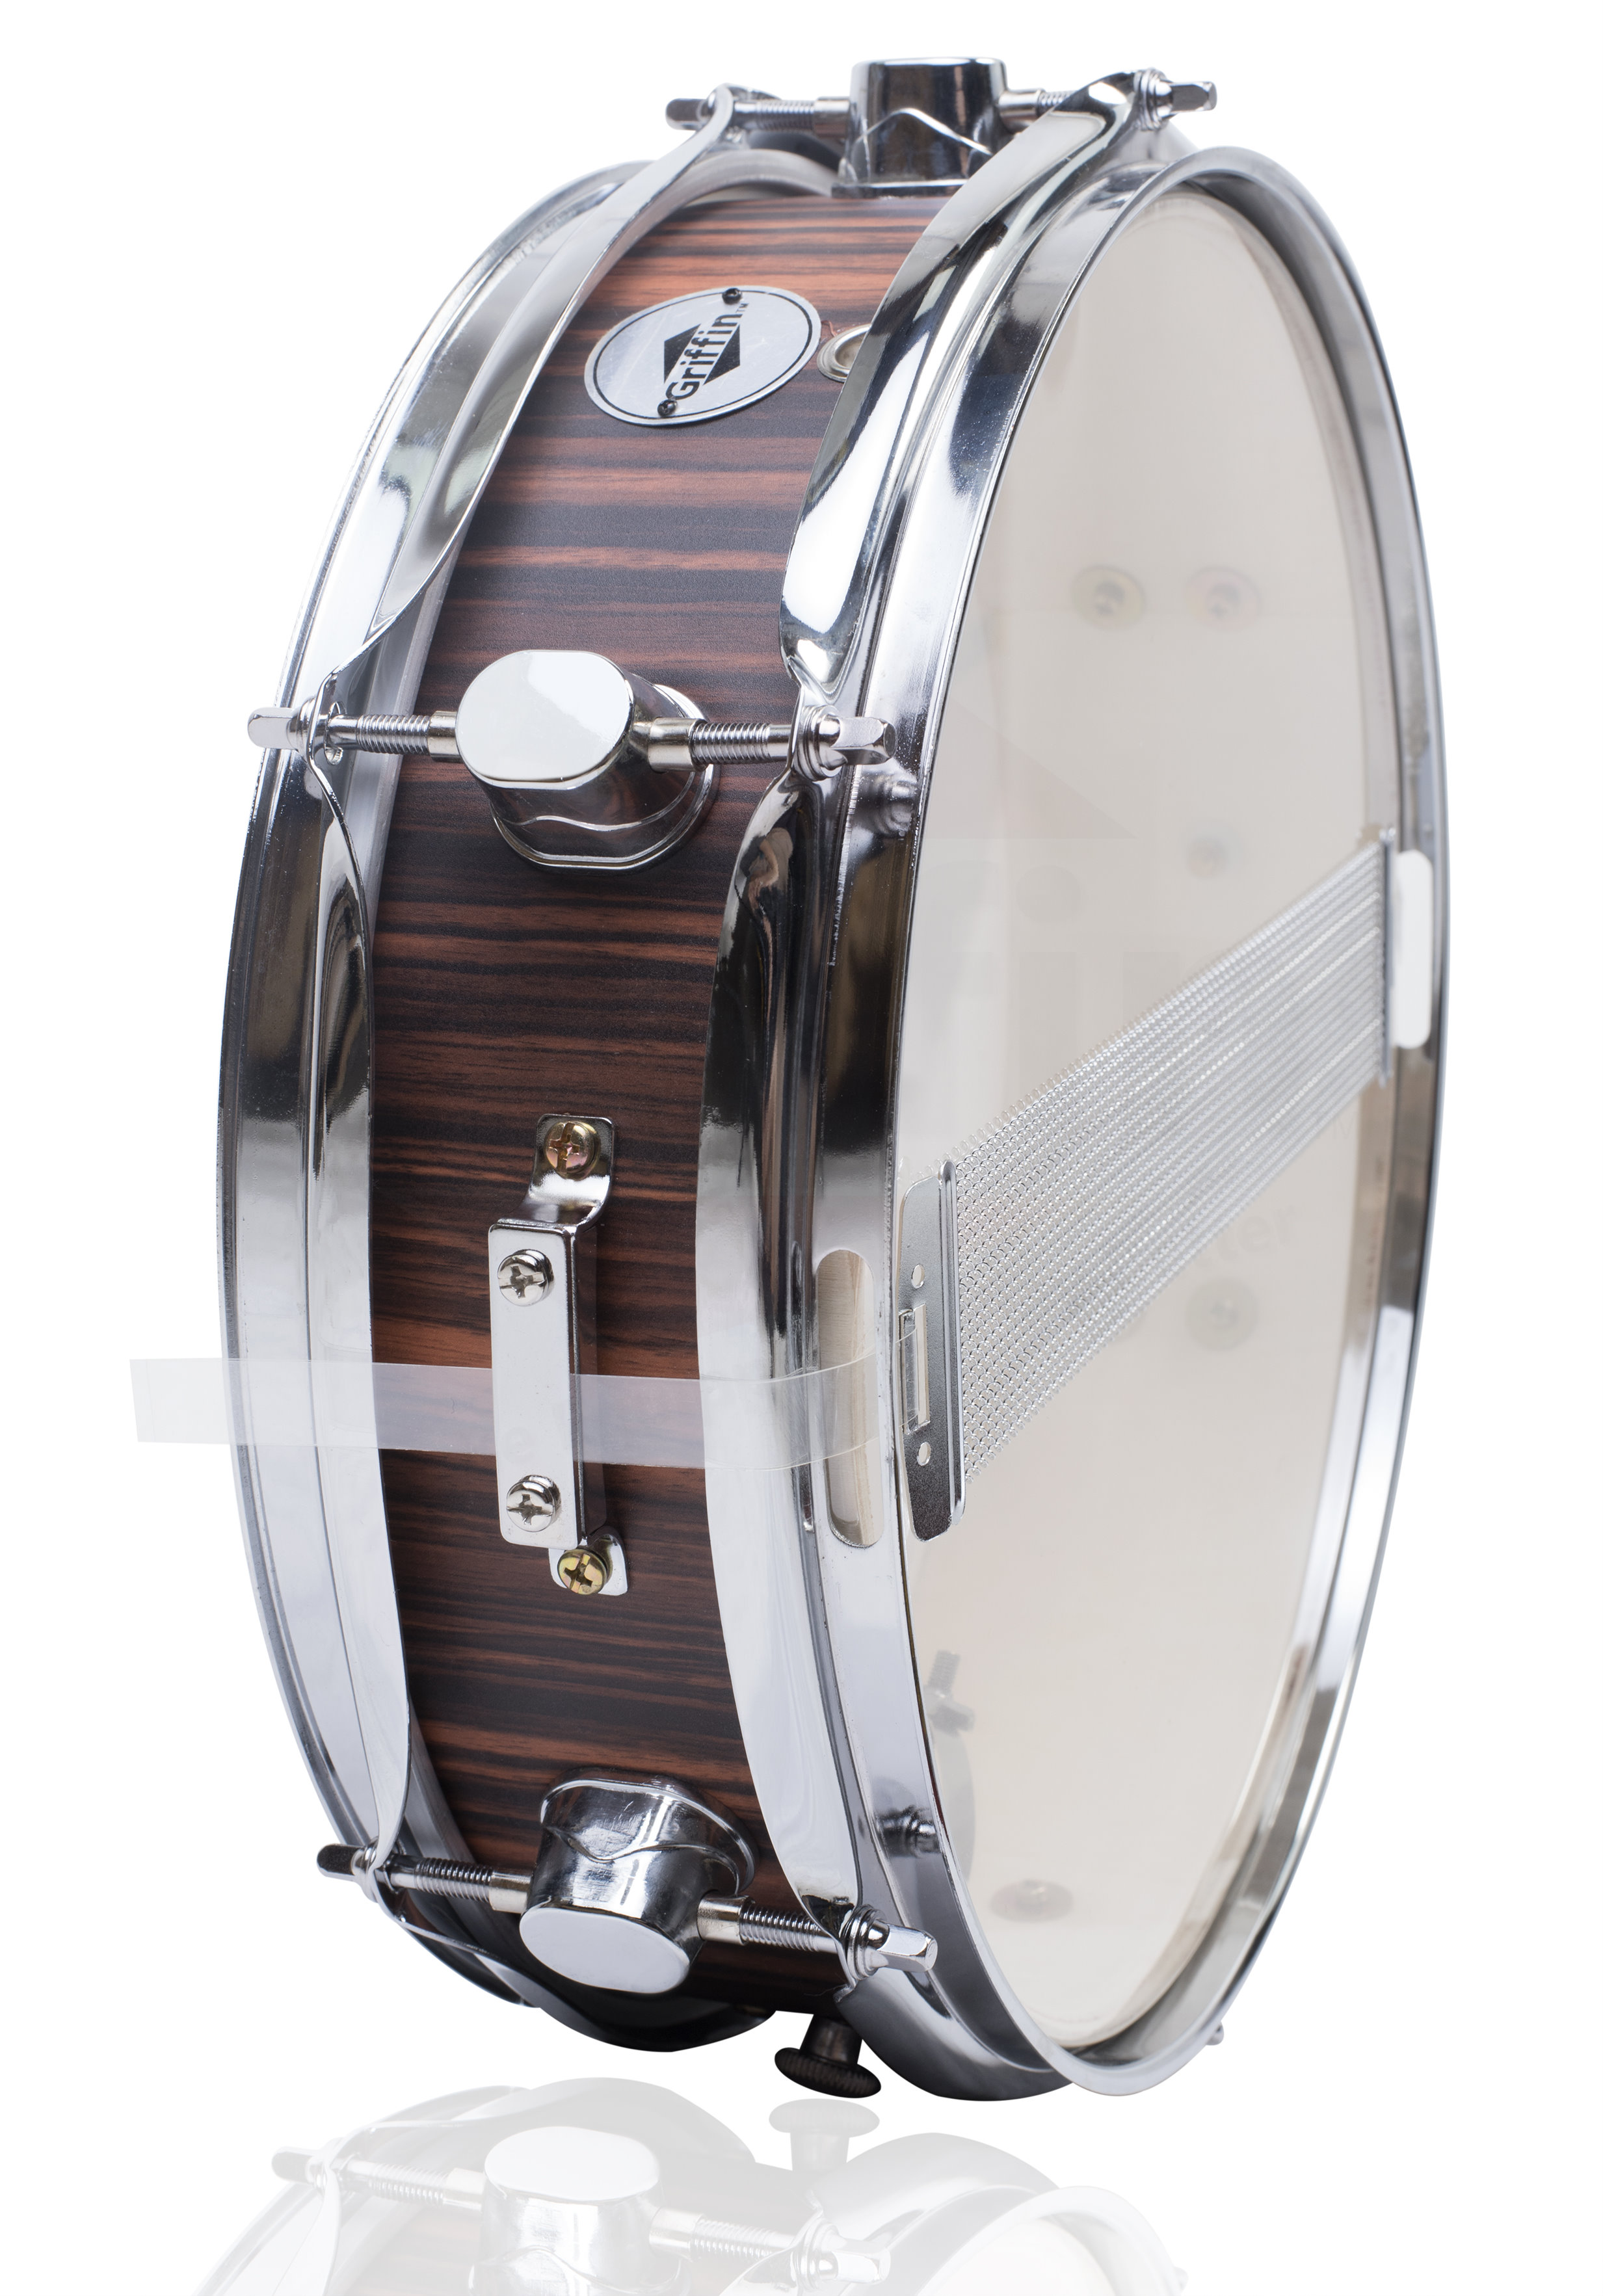 griffin piccolo snare drum 13 x 3 5 black hickory poplar wood shell percussion ebay. Black Bedroom Furniture Sets. Home Design Ideas